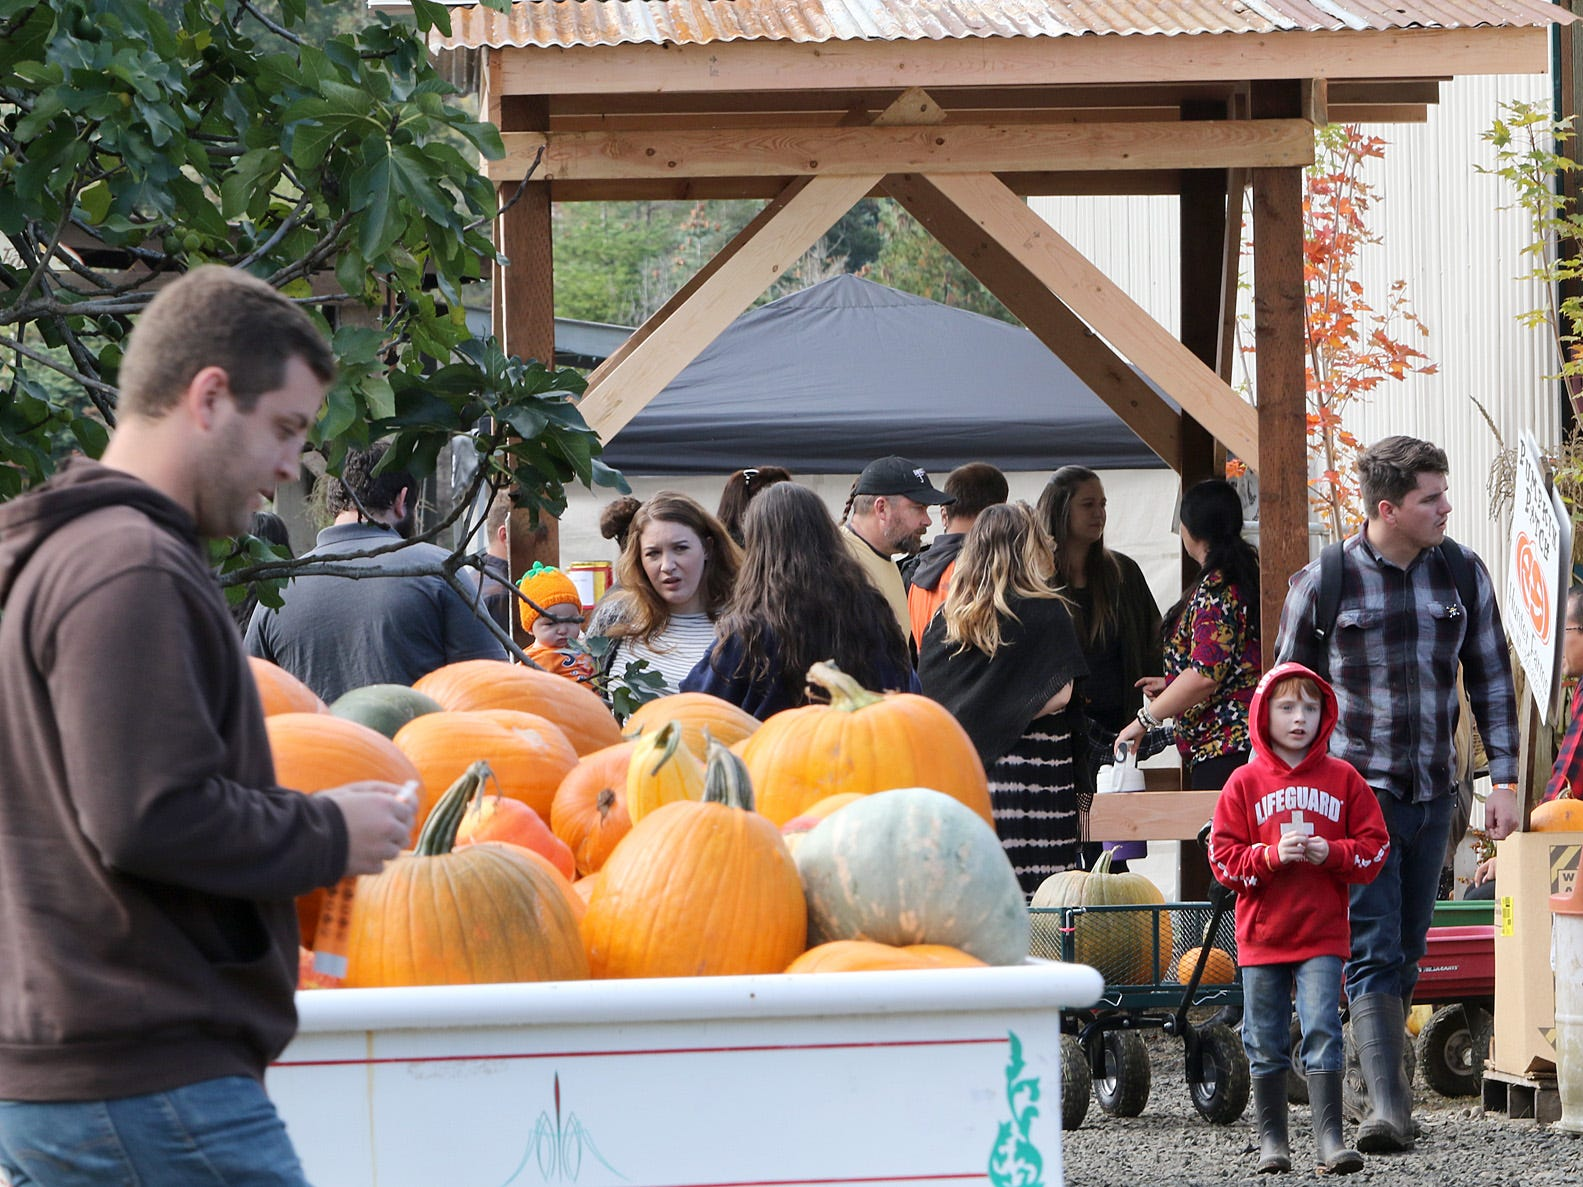 Hunter Farms, located near Union on Highway 106 next to the Skokomish River, is having its Pumpkin Patch festivities October 1-31, daily from 9:00am to 6:00pm.